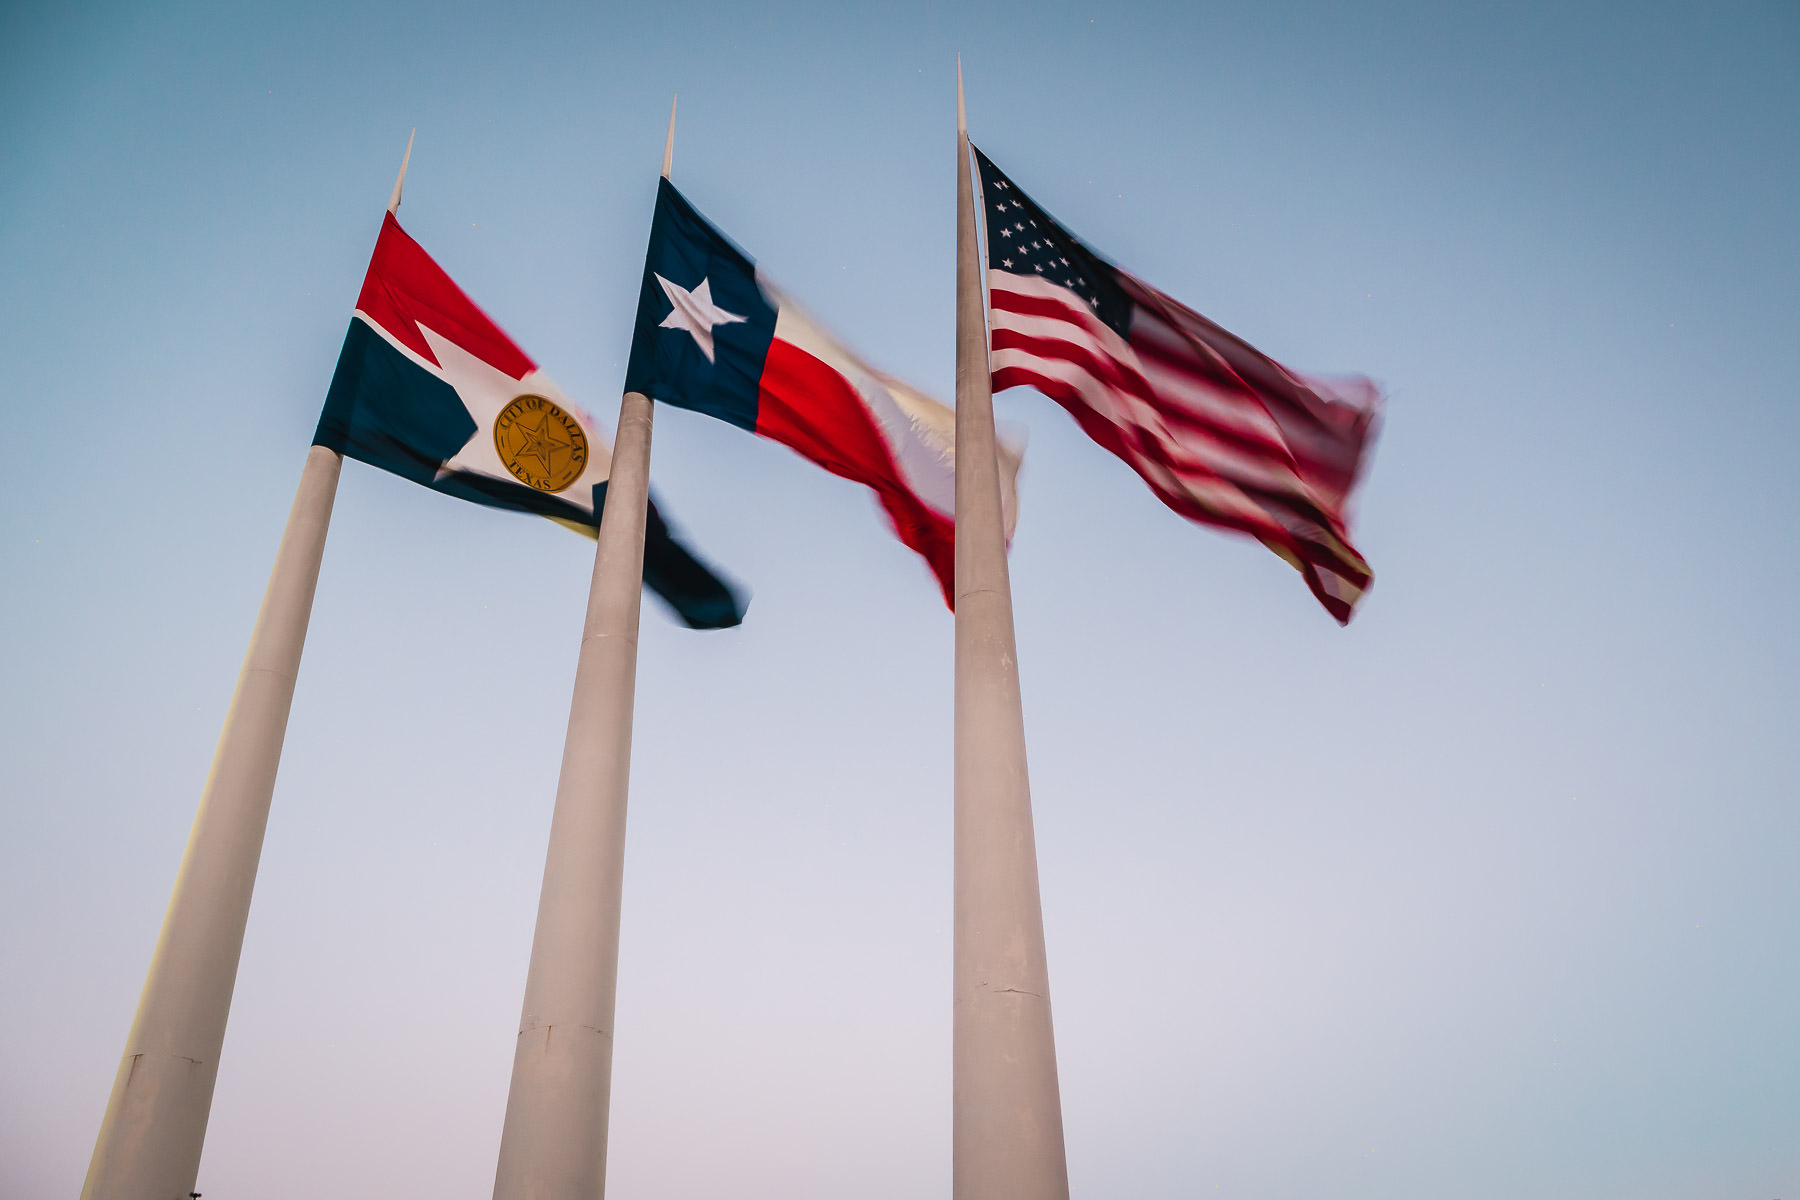 The flags of the City of Dallas, the State of Texas and the United States wave in the evening sky at Dallas City Hall.